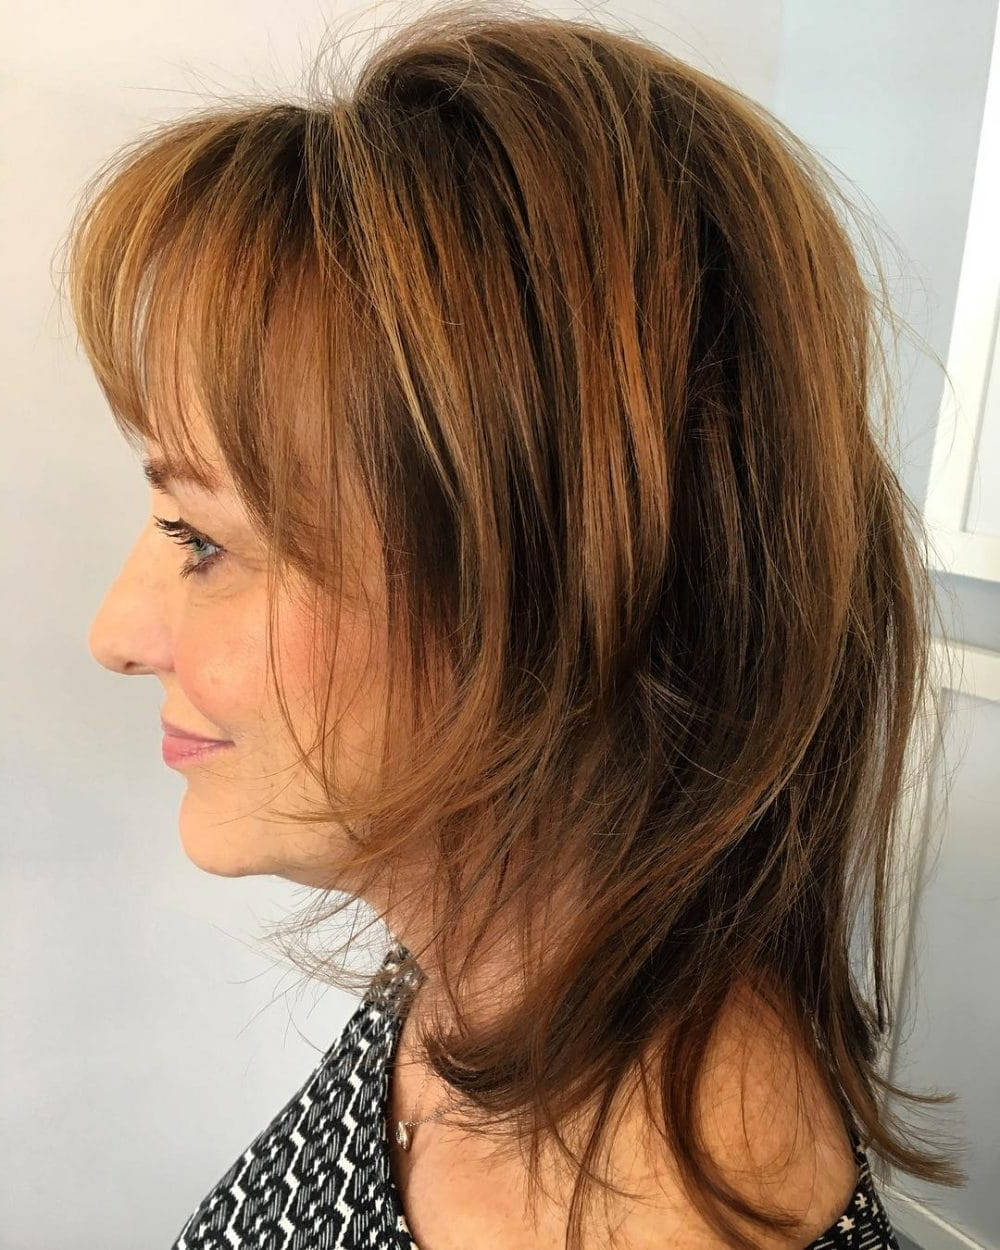 26 Modern Shag Haircuts To Try In 2019 Regarding Favorite Sharp Shag Haircuts With Razored Layers (View 7 of 20)